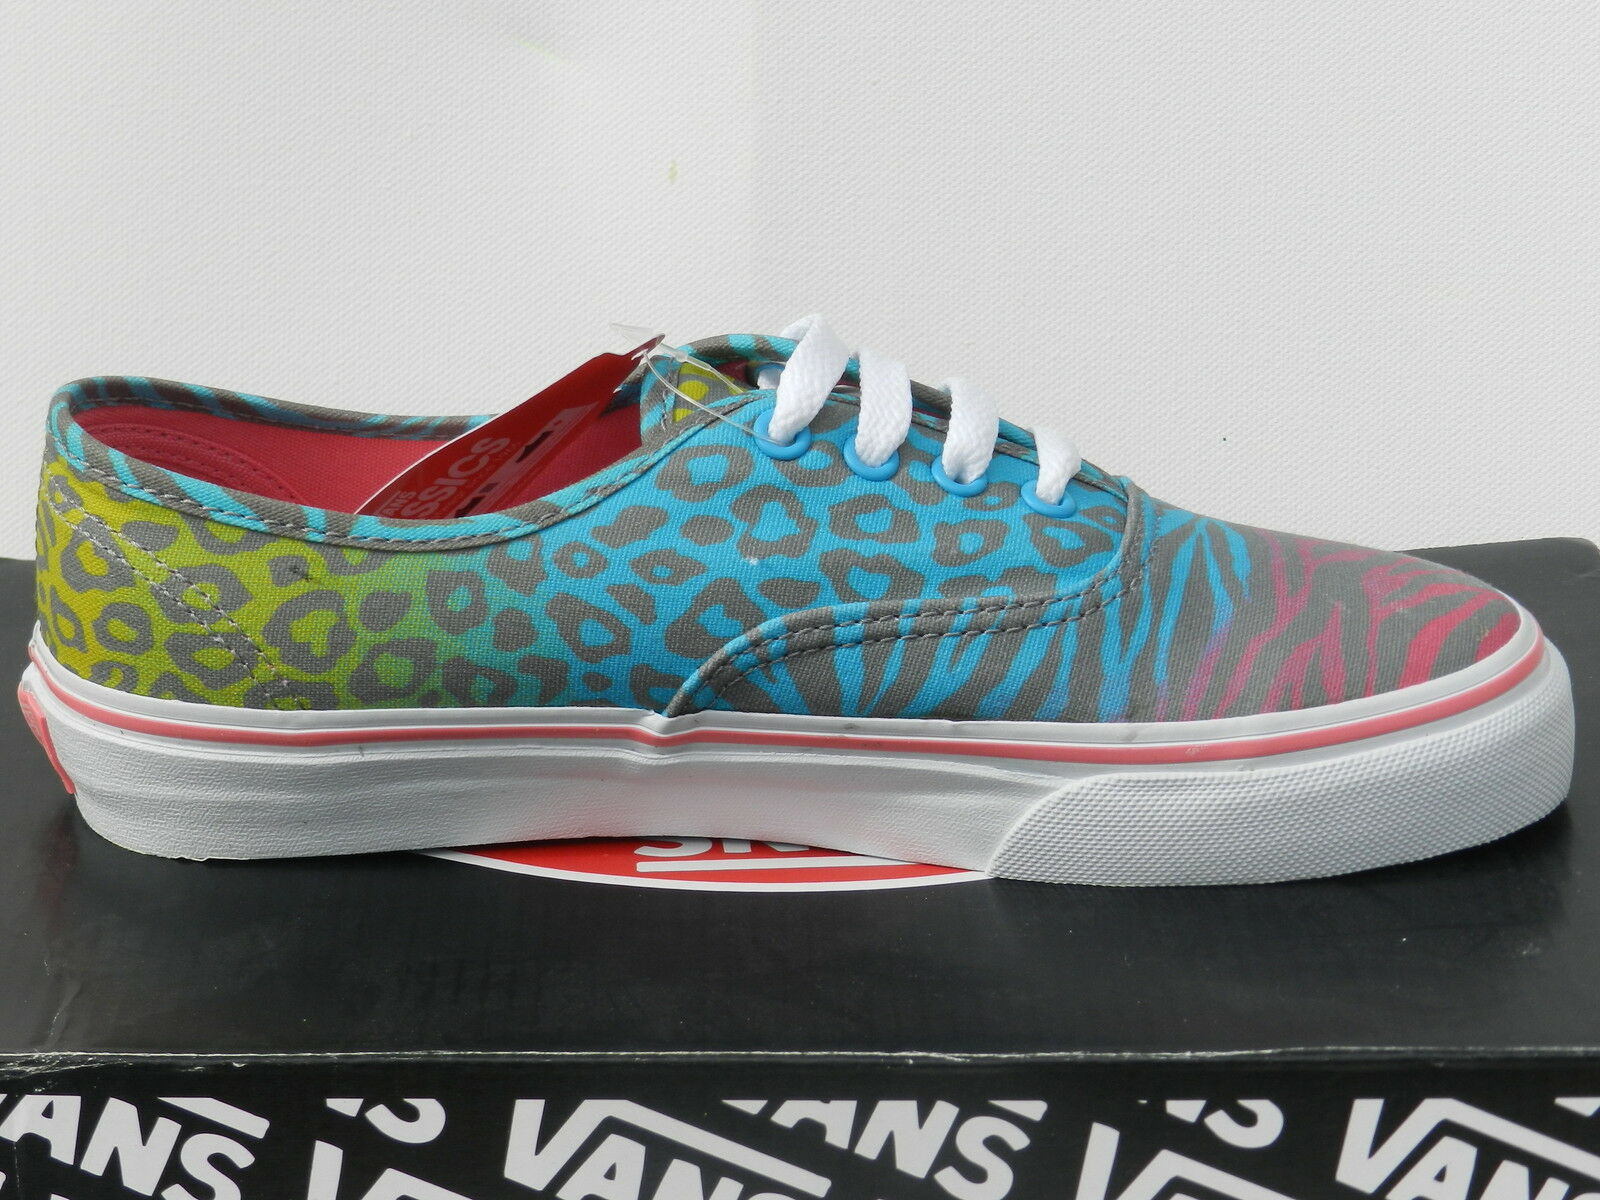 camping Authentic 5 Tall Chaussures Vans 34 Tennis Zwfx15qn1z Fille 0Nnwv8m